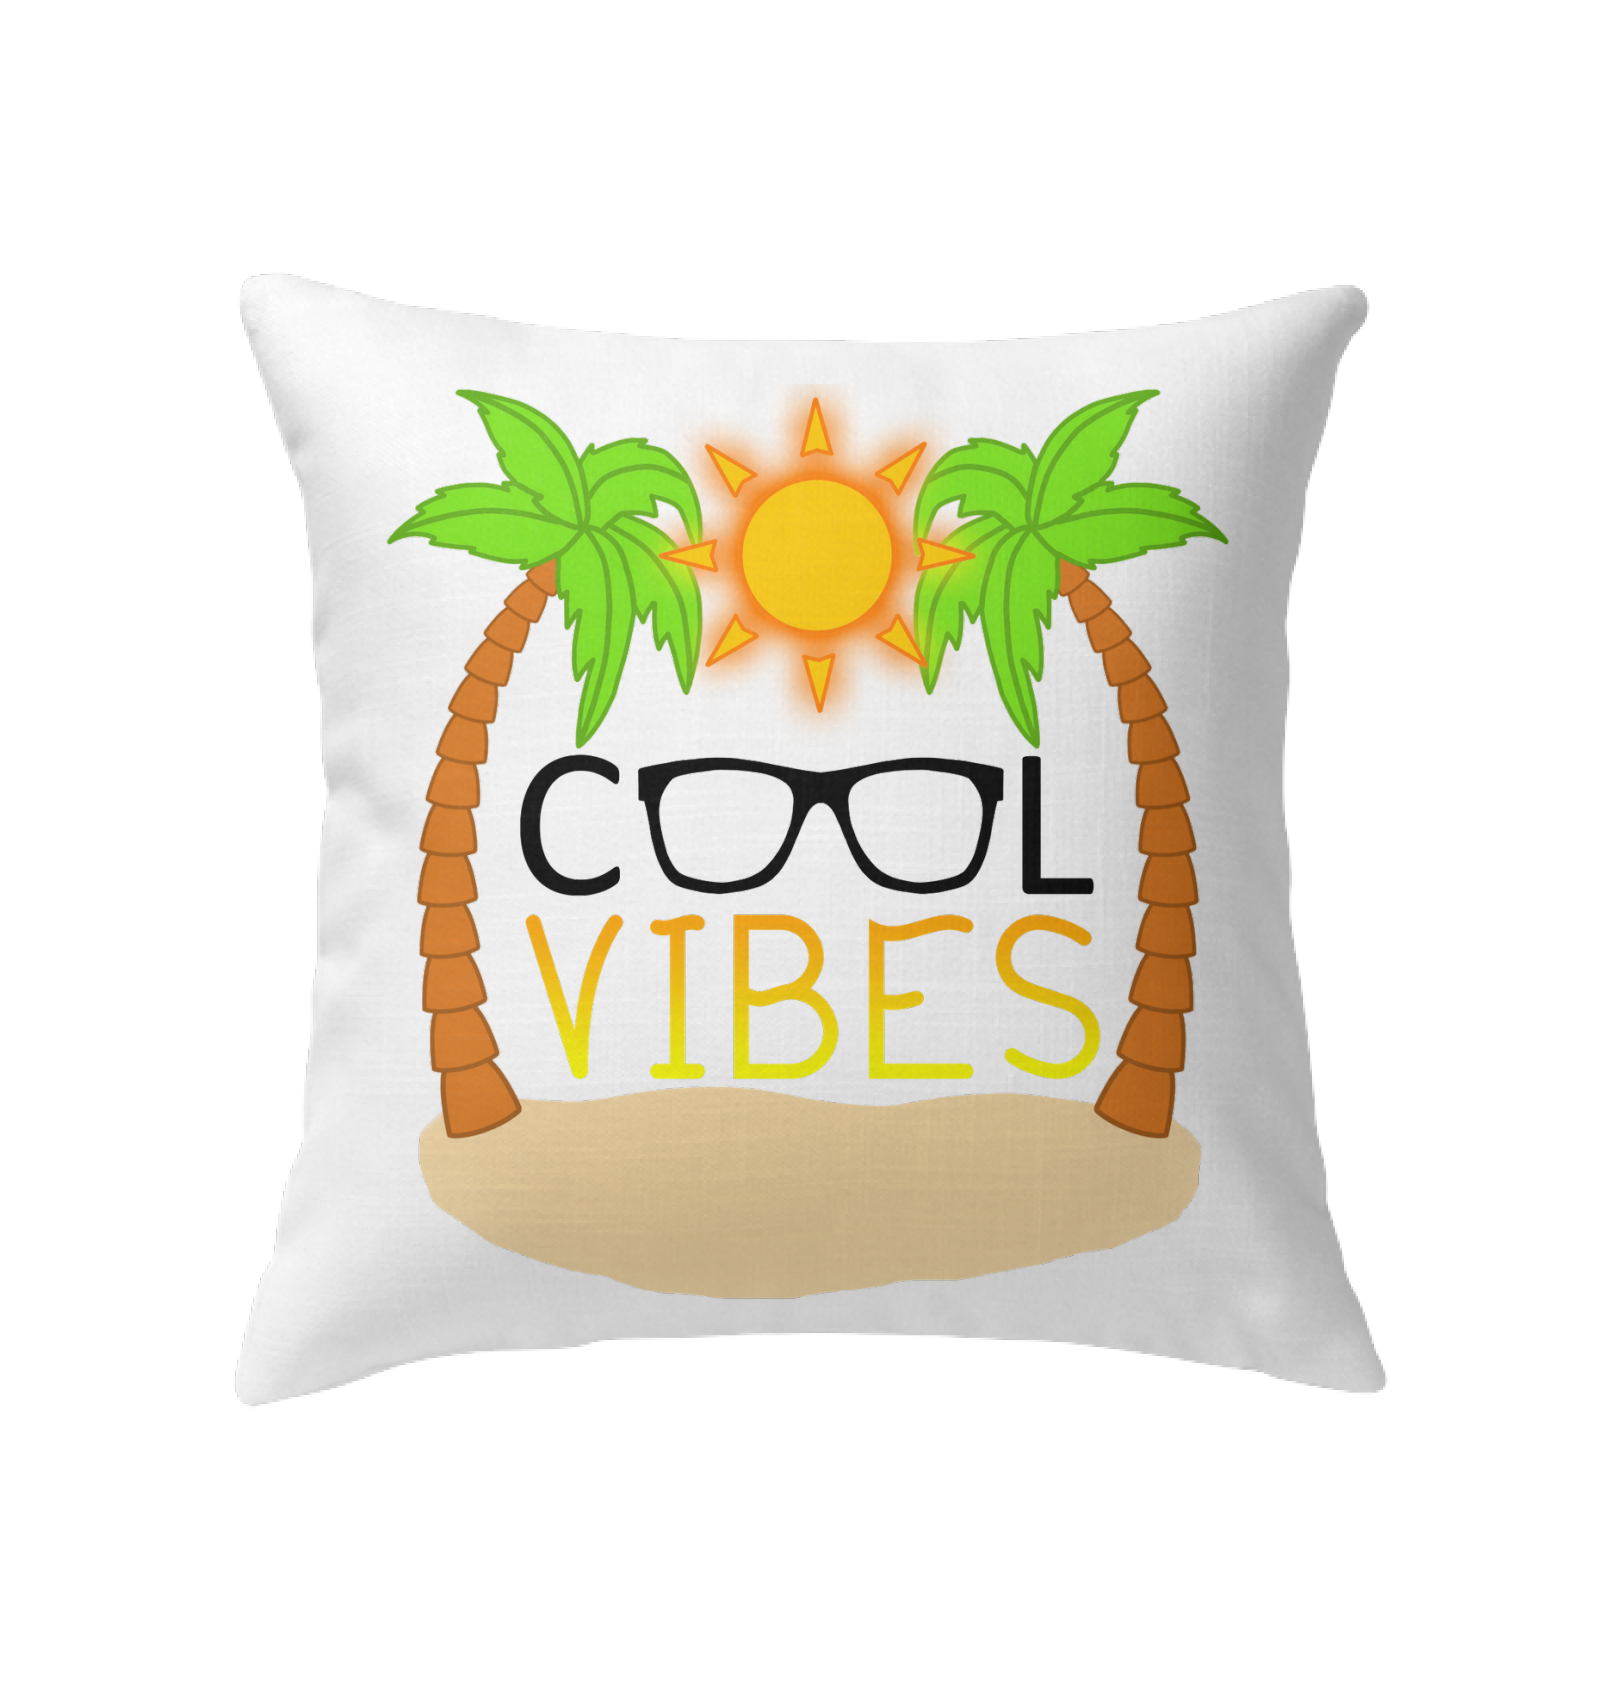 Cool Vibes - Indoor Pillow